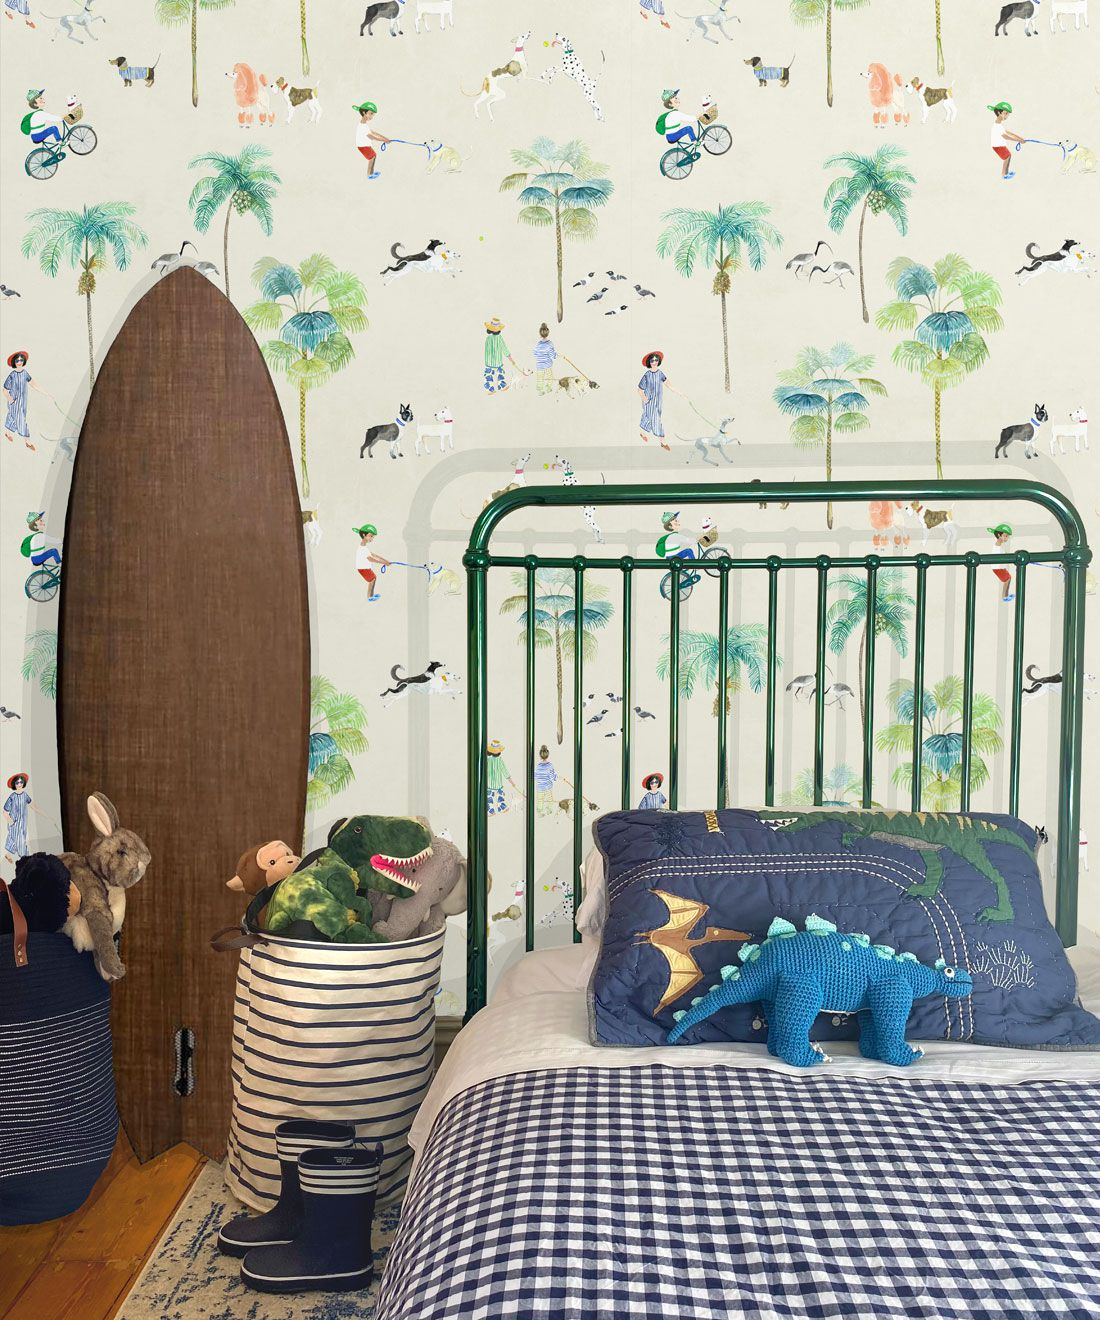 At The Dog Park Wallpaper • Kids Wallpaper • Cream • Insitu